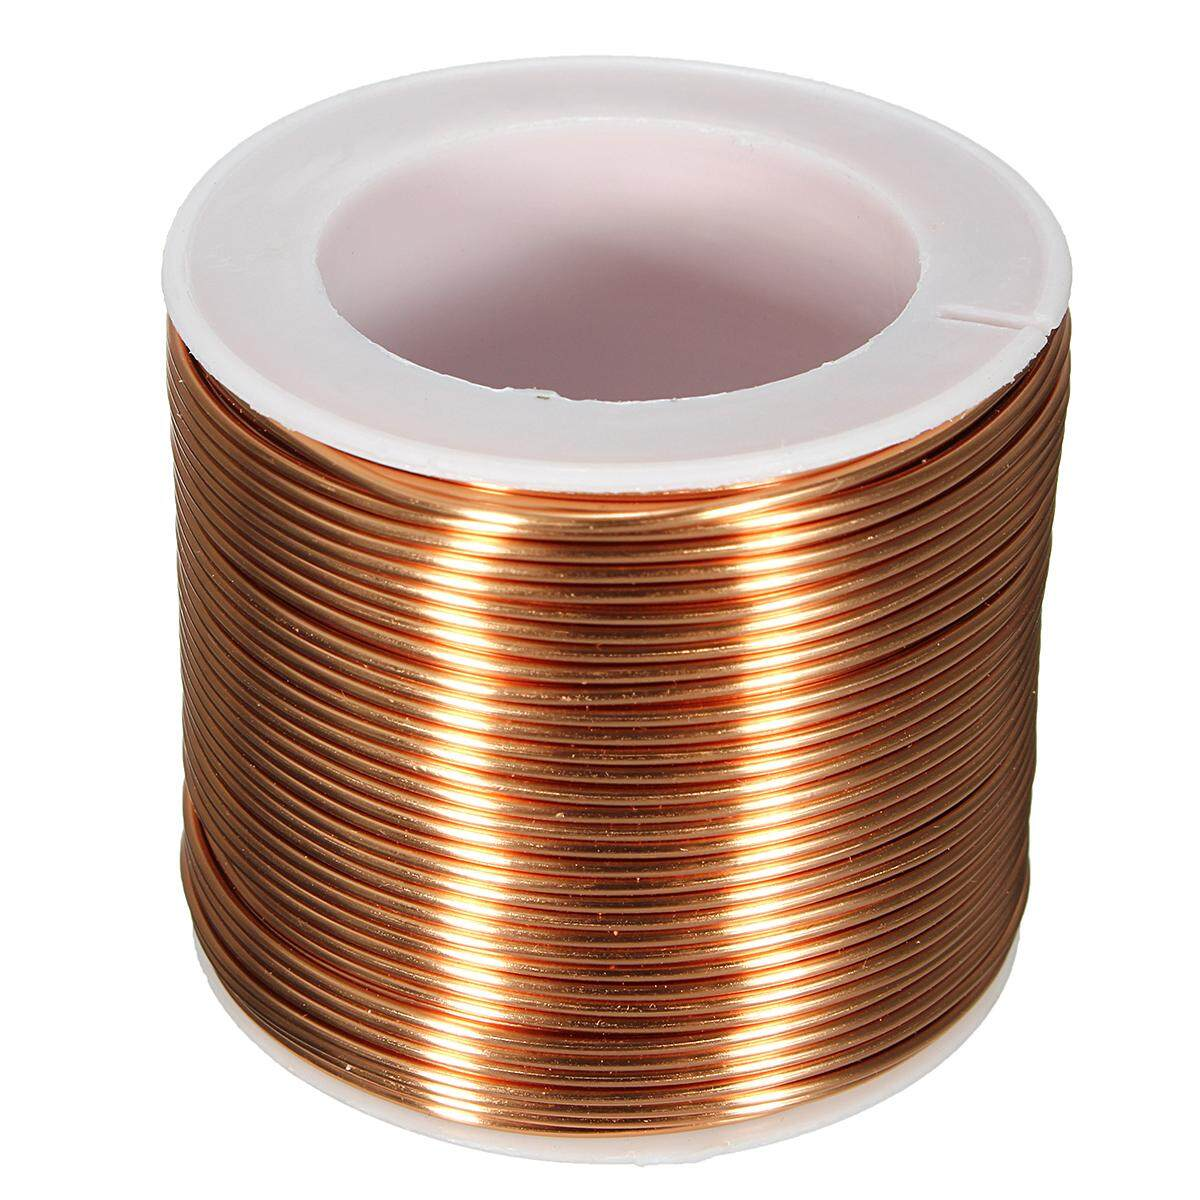 Buy SPOOL COPPER WIRE 1.0mm,18GA,25m,85ft ENAMELED COPPER coil ...